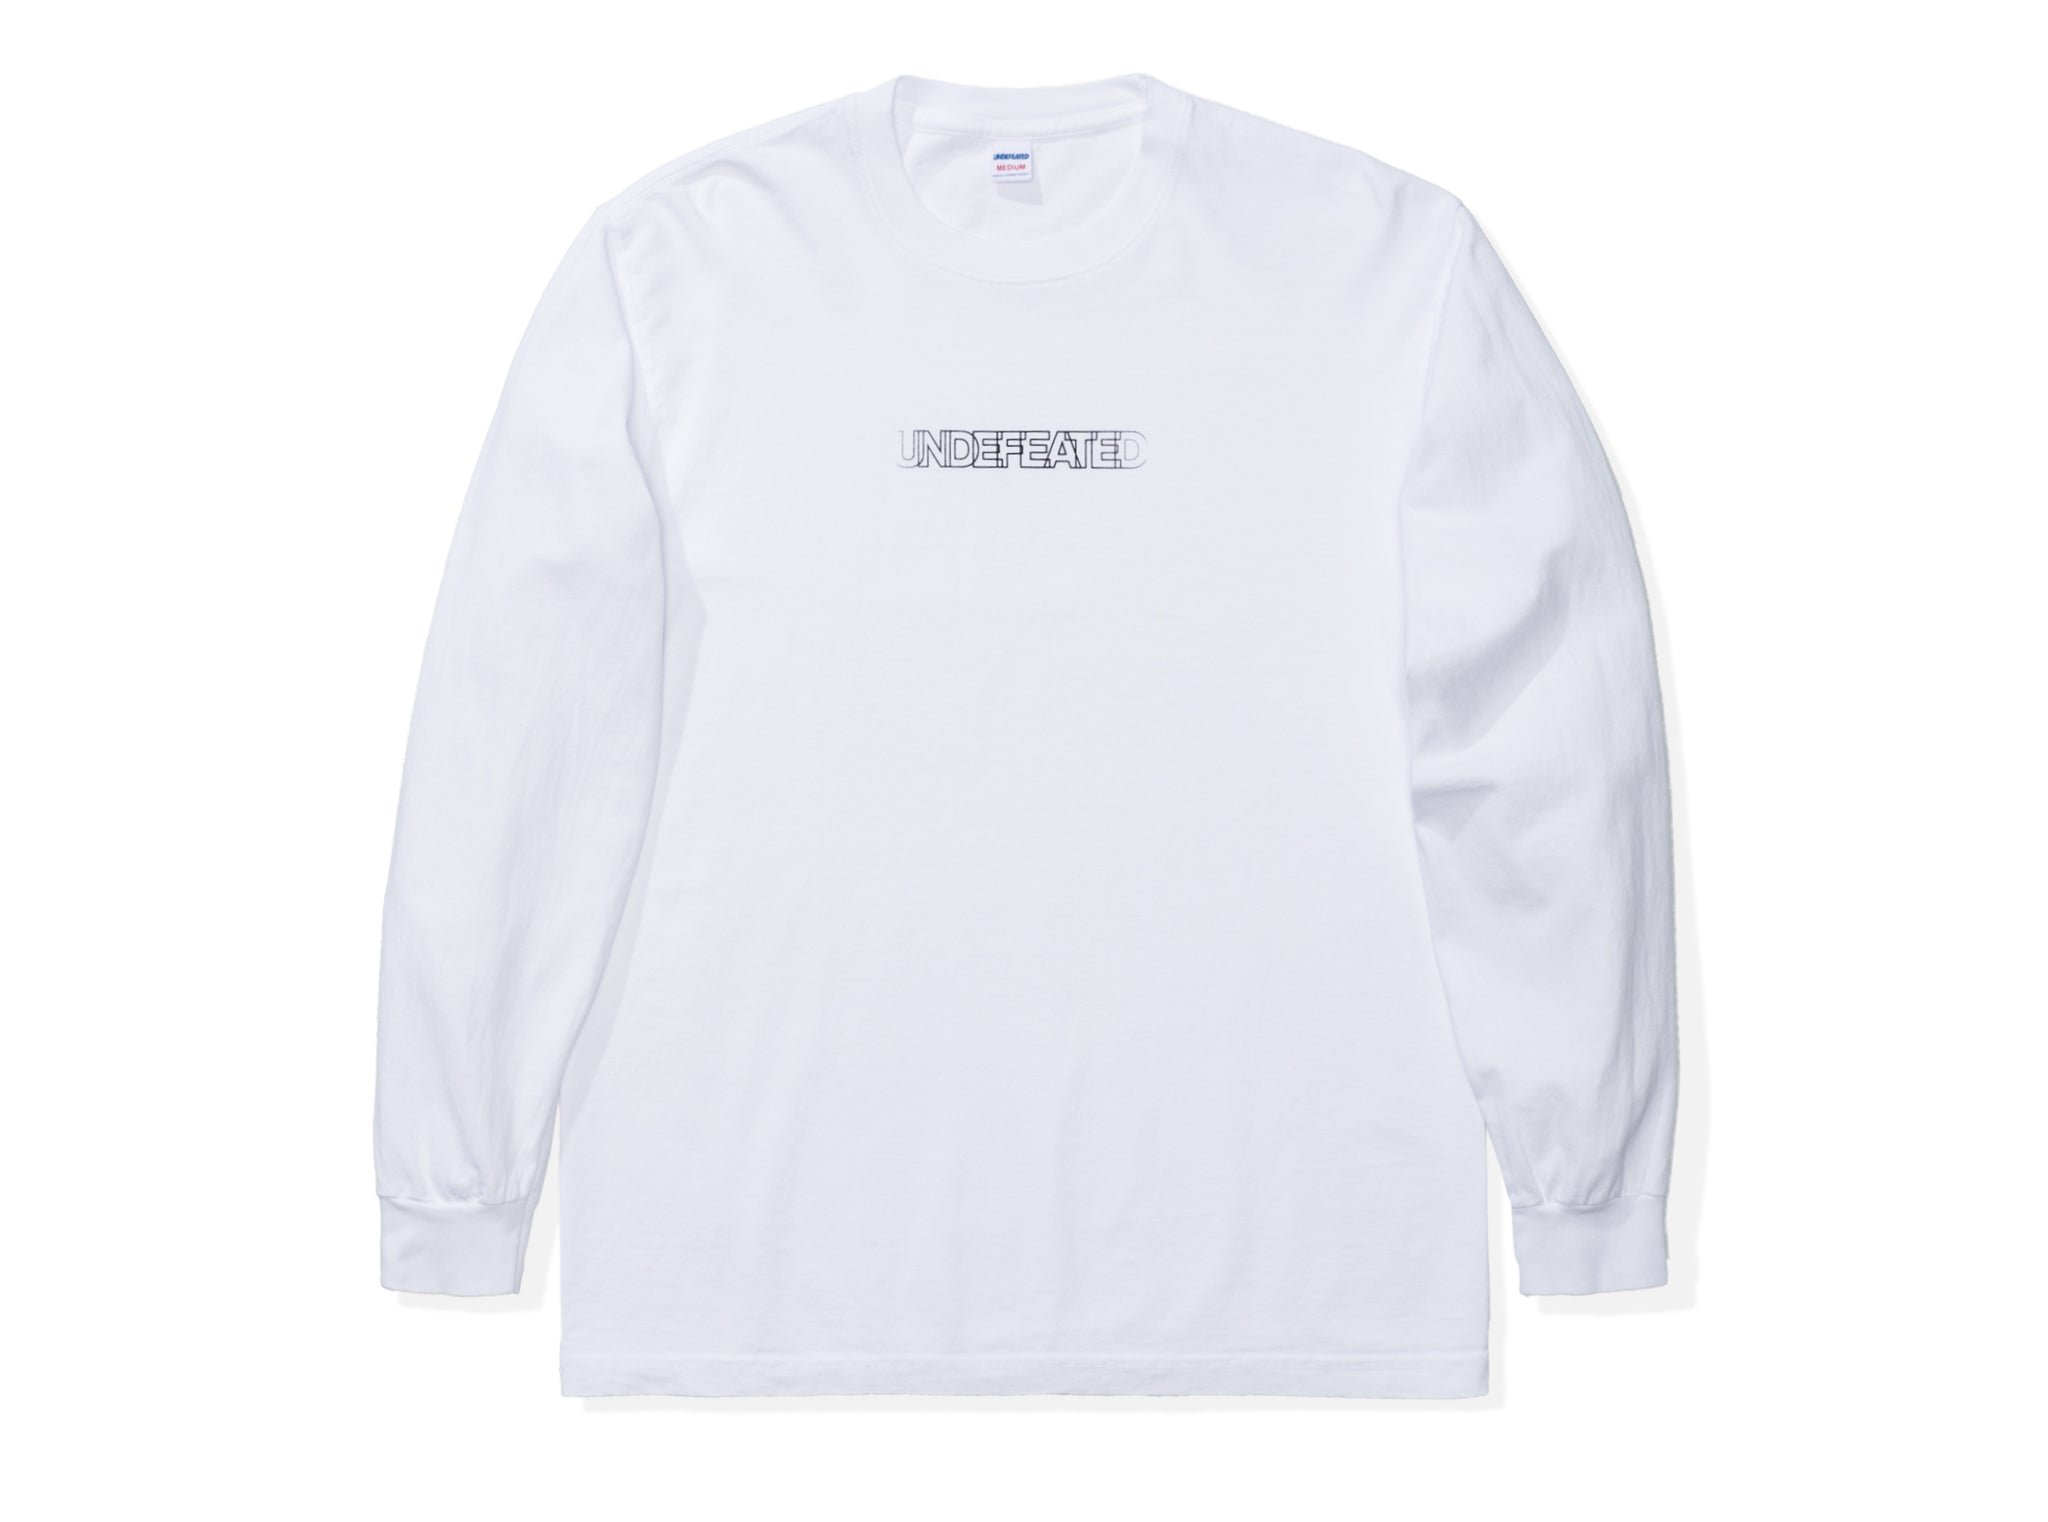 UNDEFEATED FADEOUT L/S TEE